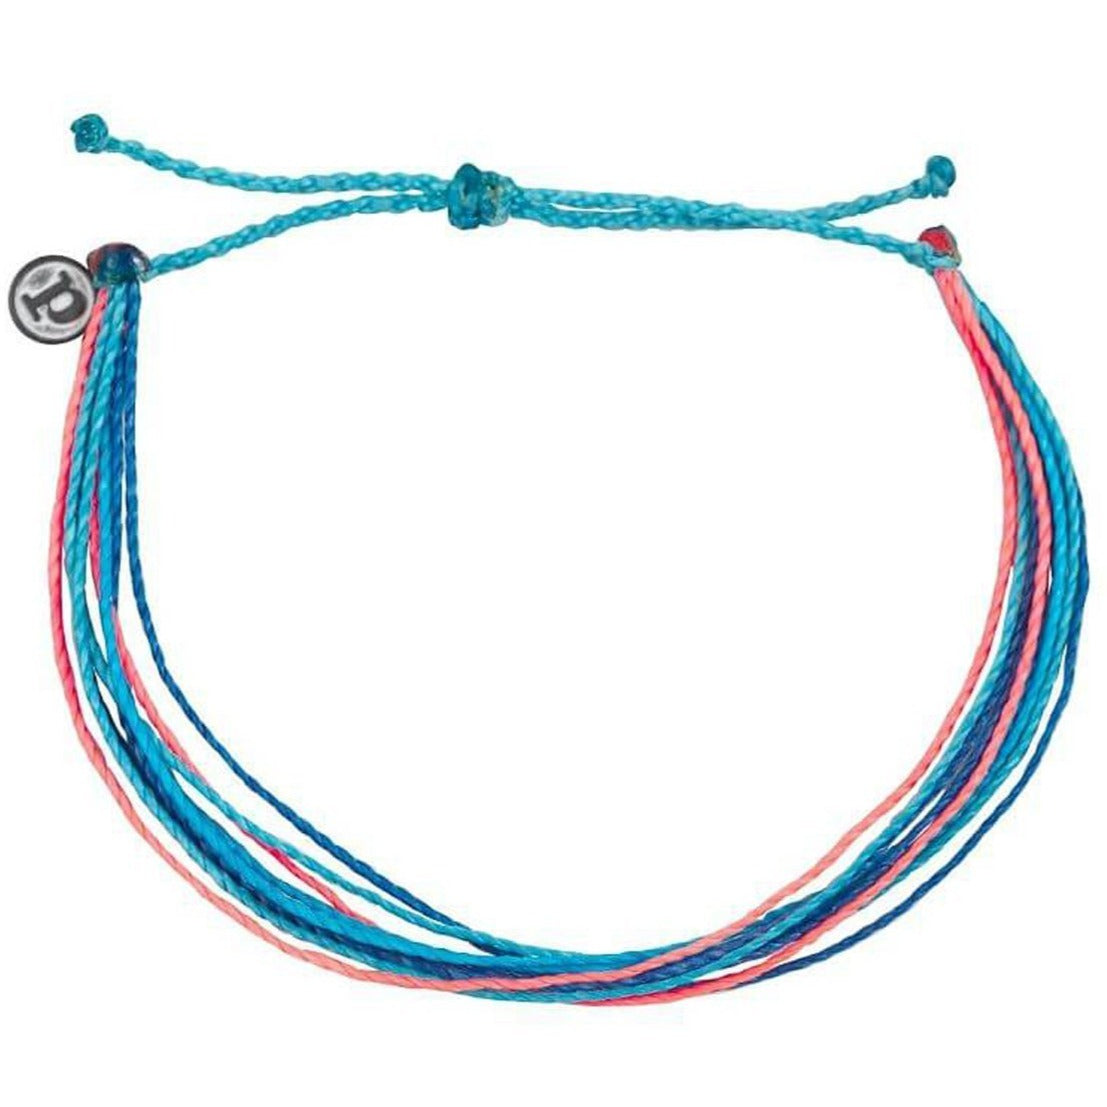 Sunset Beach Originals Anklet by Pura Vida